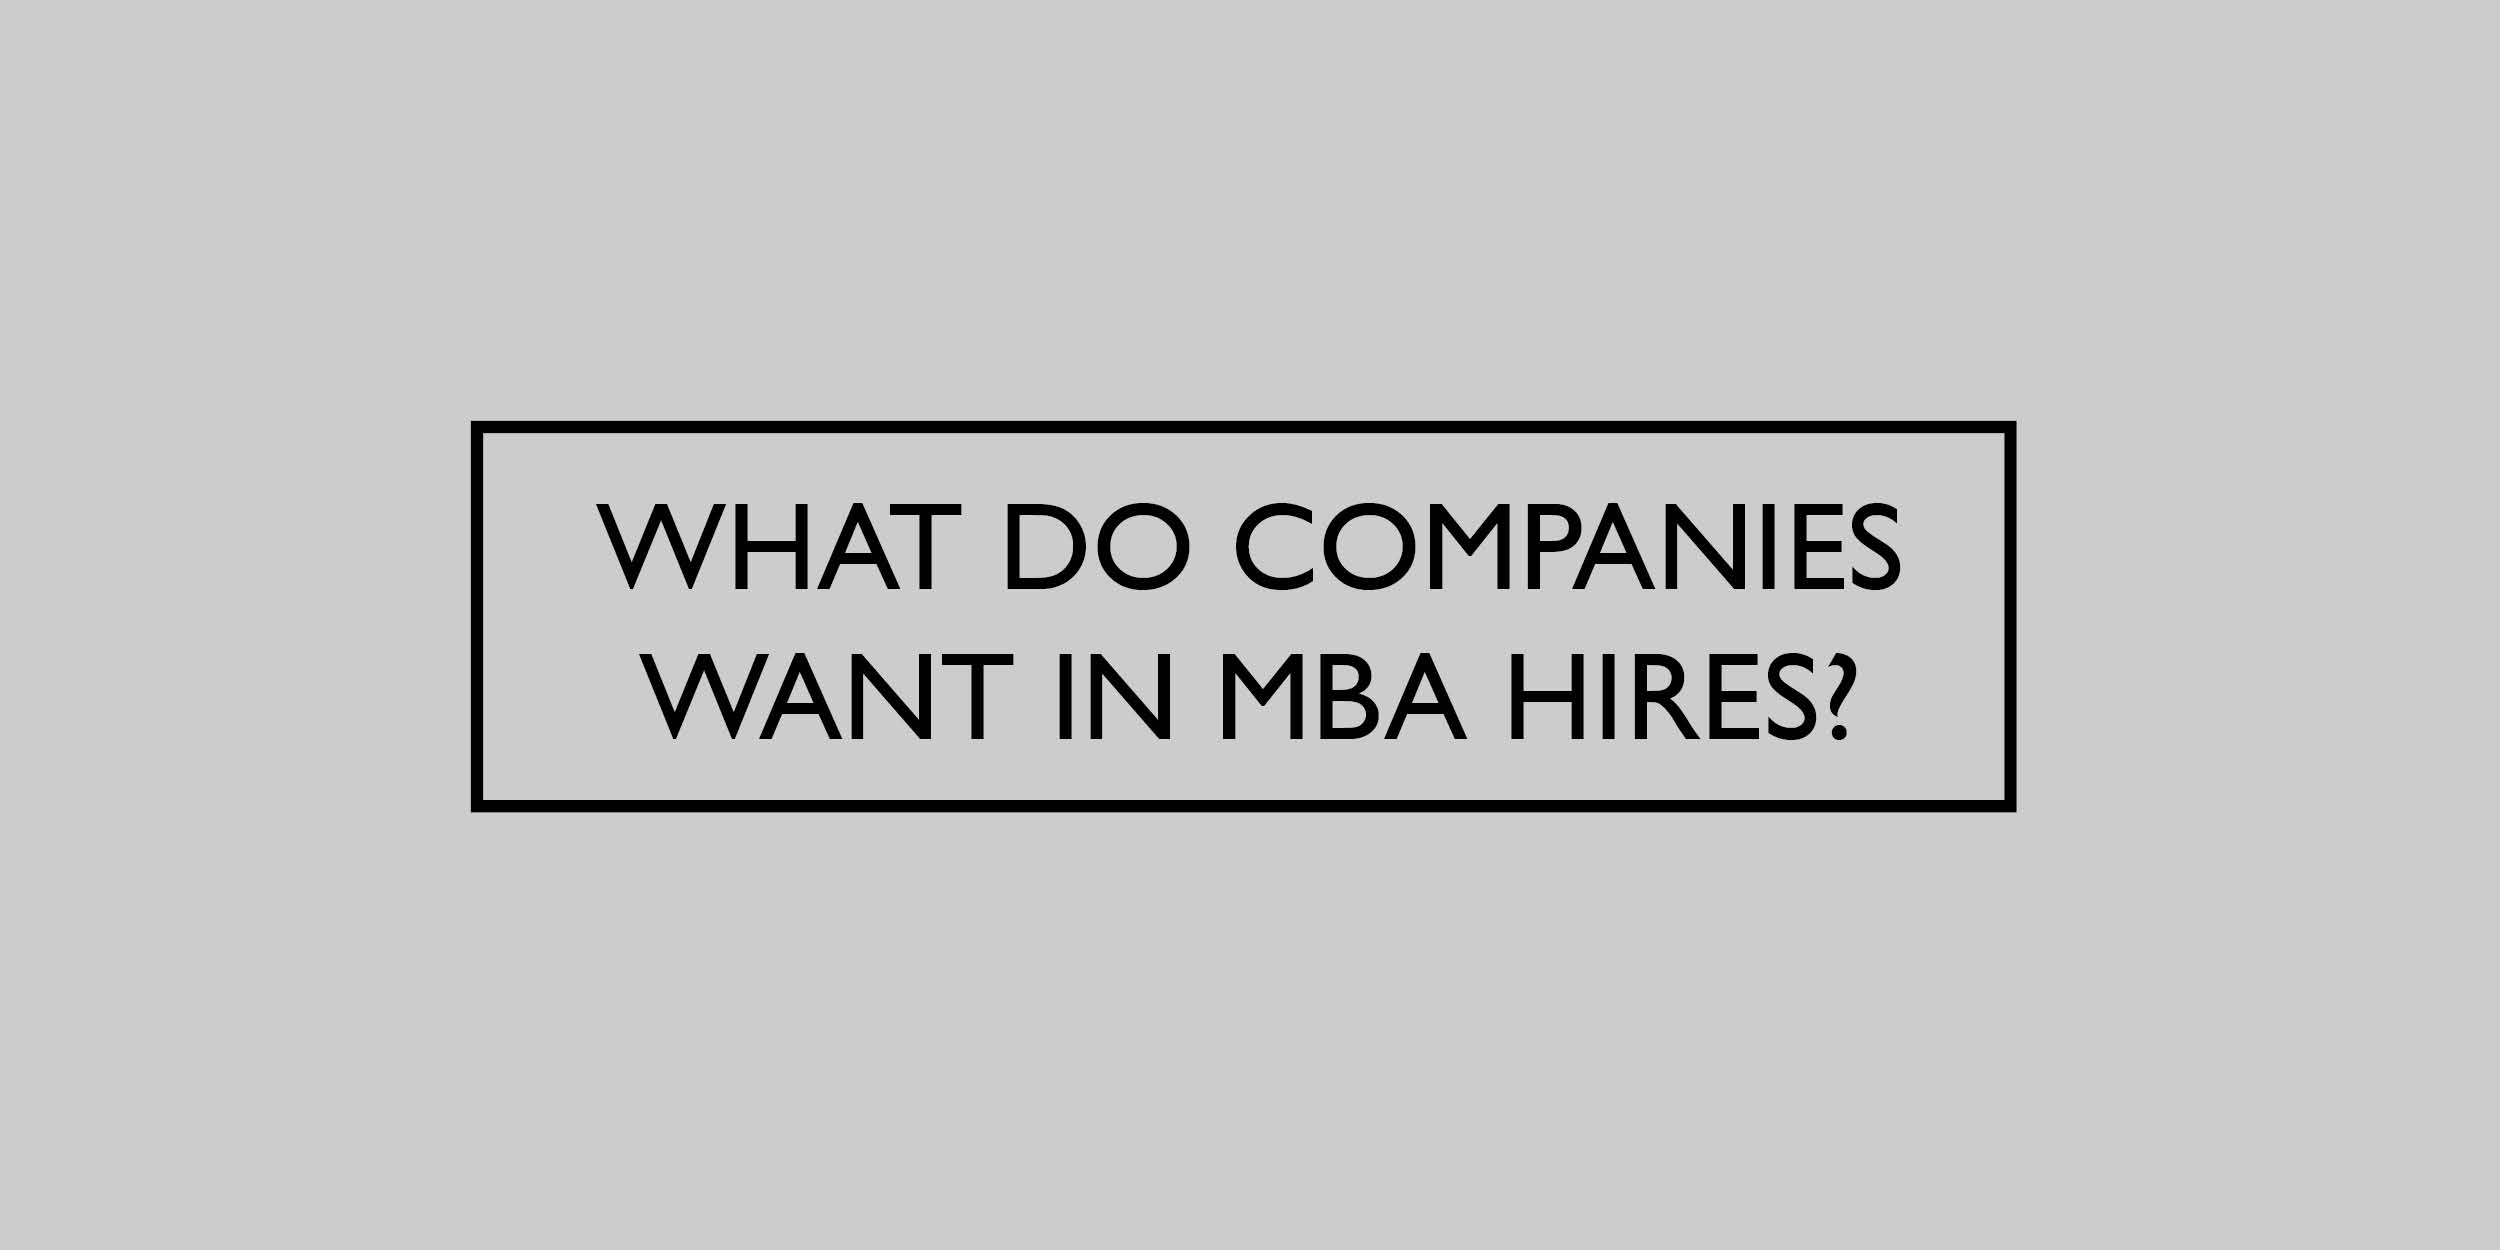 What do companies want in MBA hires?